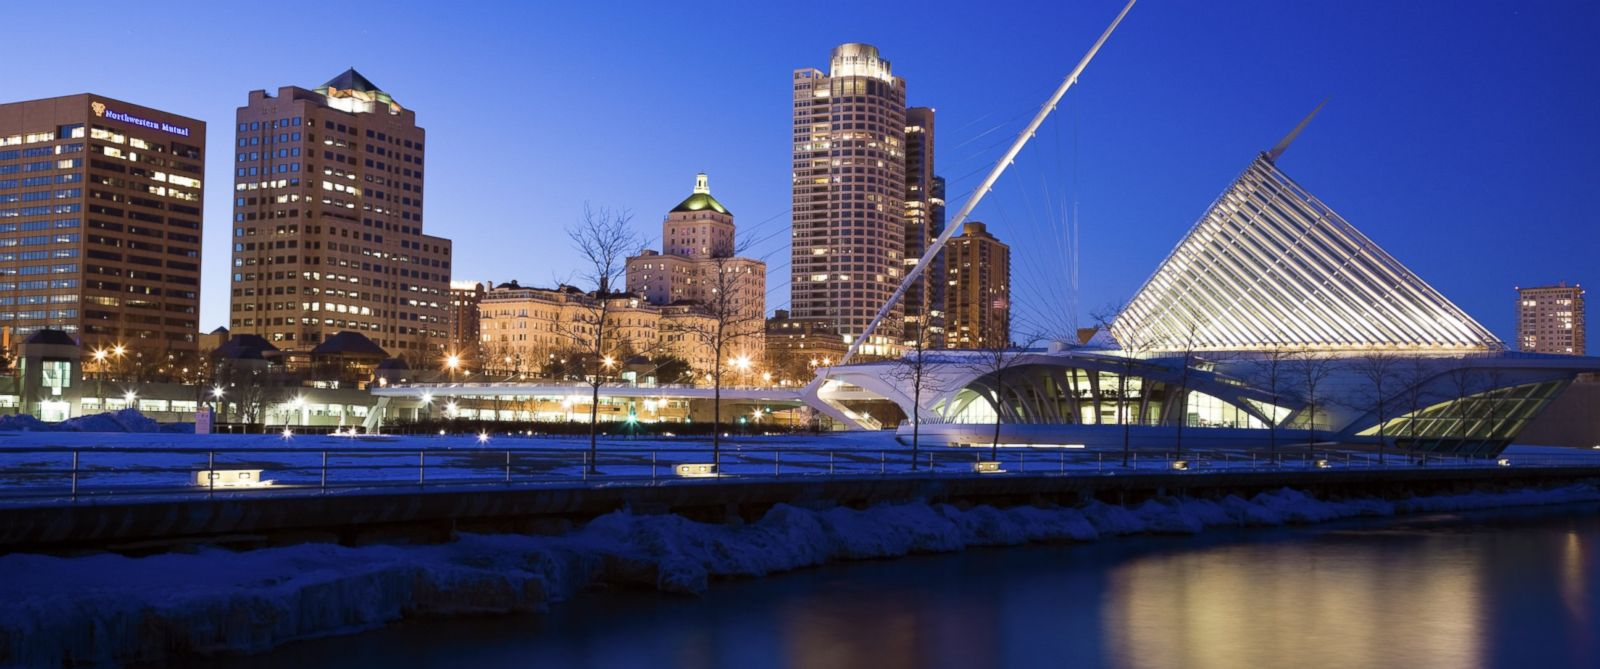 PHOTO: The city offers a blend of history and a variety of culinary, arts and entertainment options.